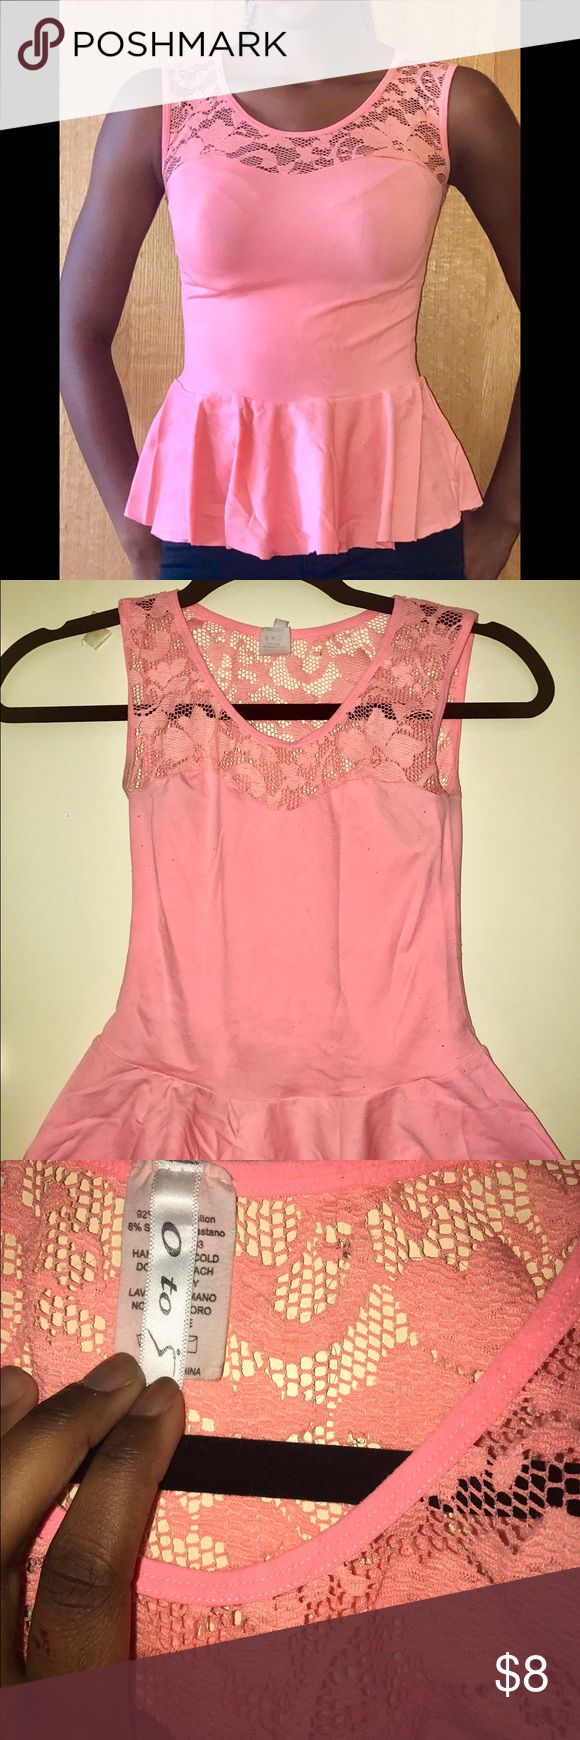 Pink Peplum Top Stretchy pink peplum top with floral lace design. Will fit sizes XS & S Tops